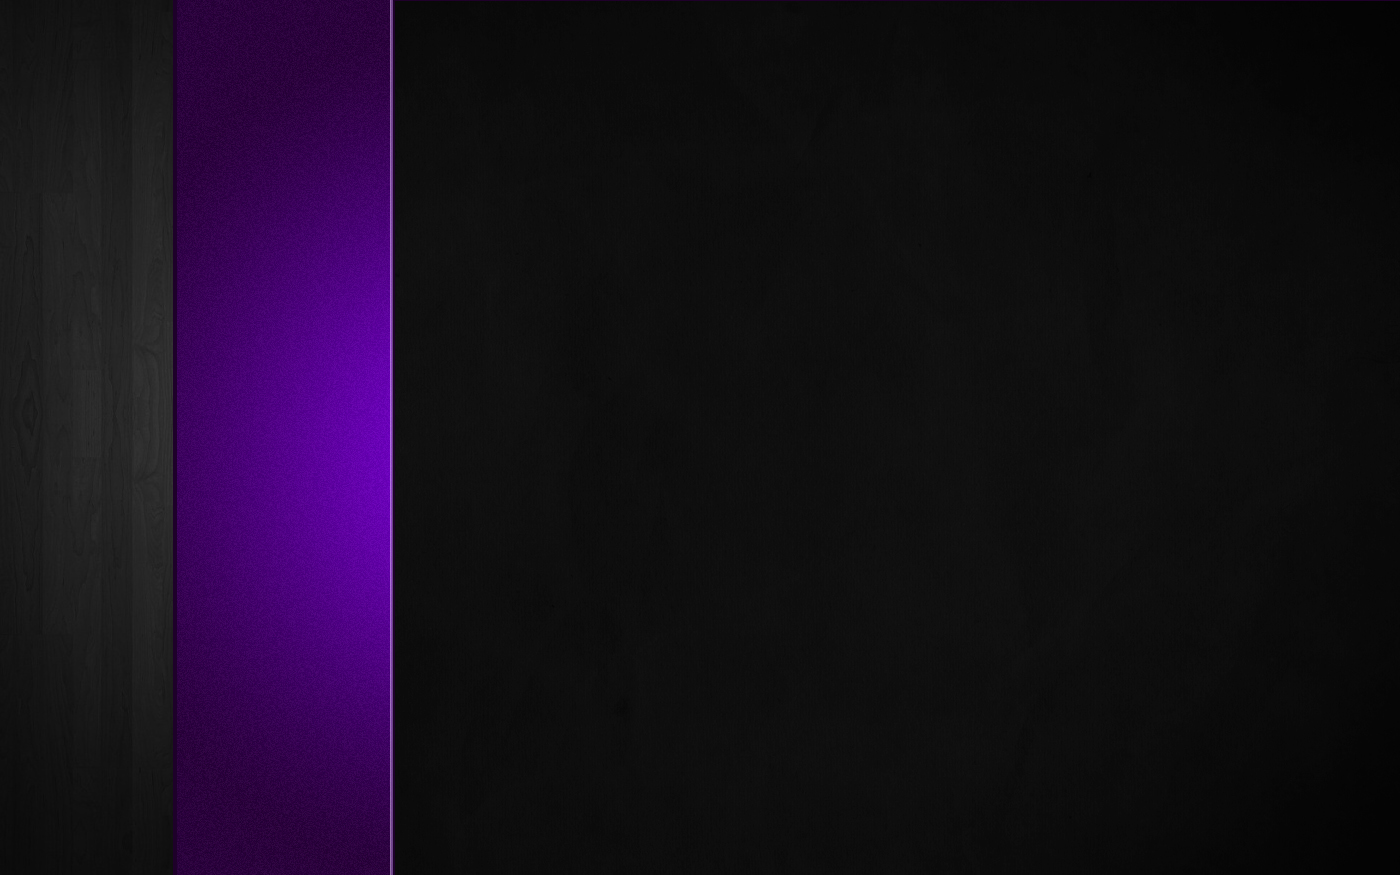 purple black wallpaper by cajili on deviantart